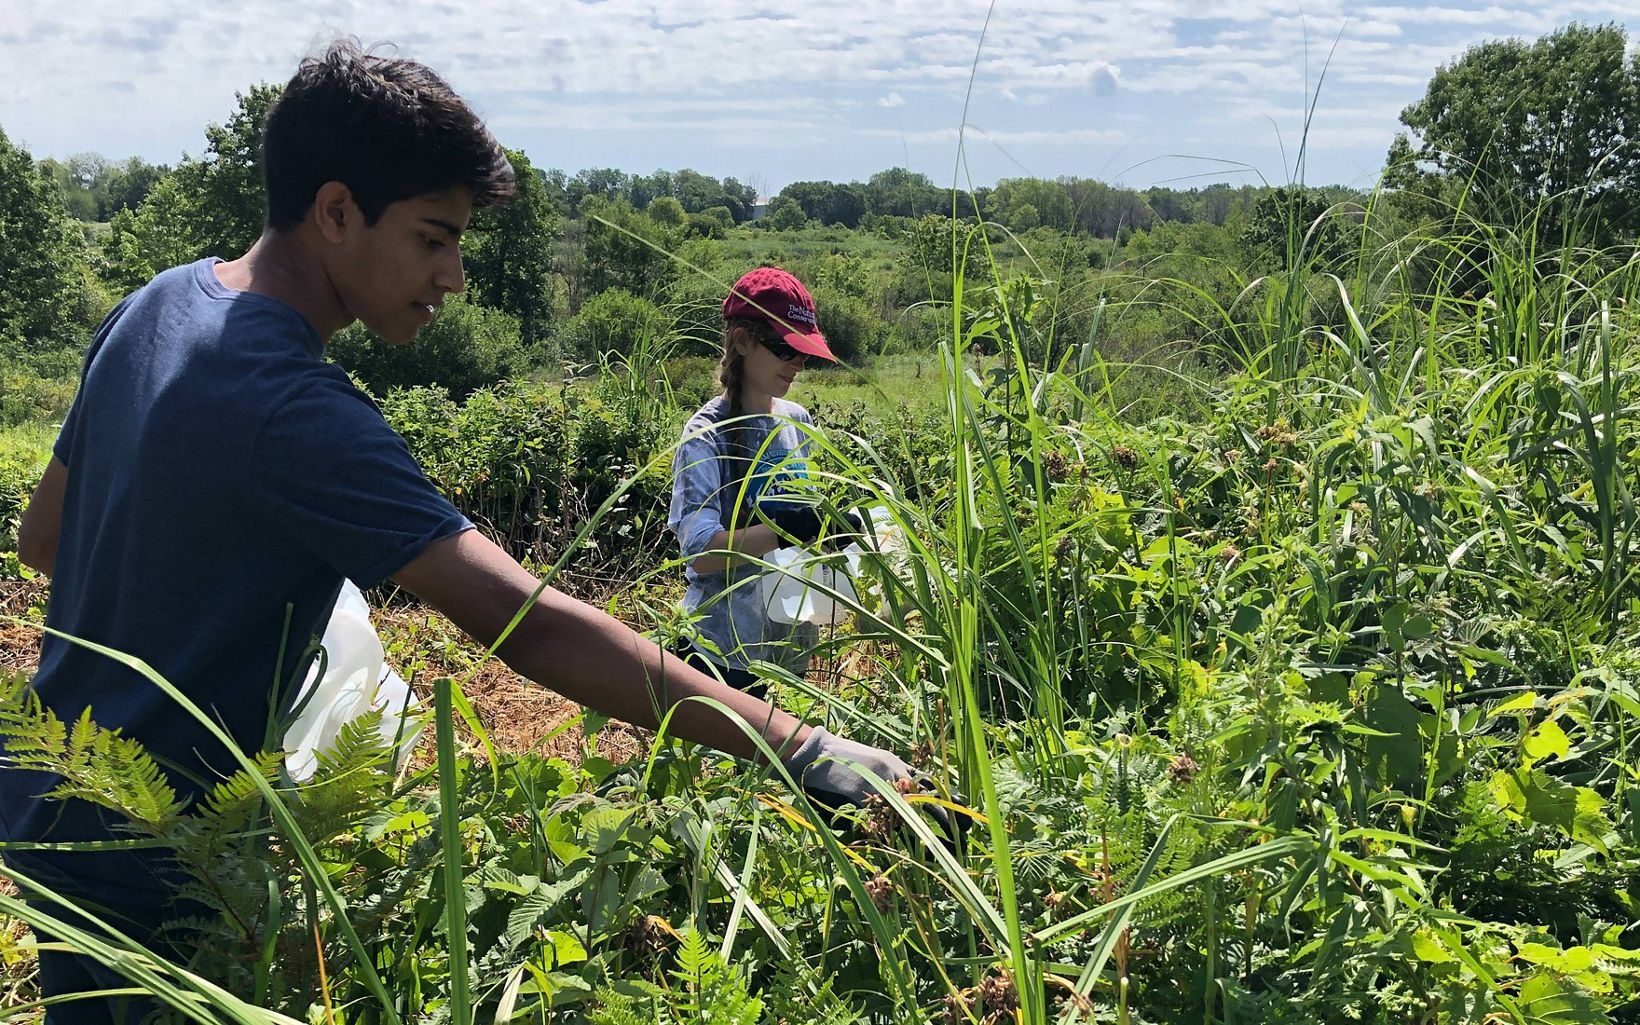 High school interns Luke and Erna collect seed from native wildflowers to be used in plantings as part of the restoration of the land at Chiwaukee Prairie West.